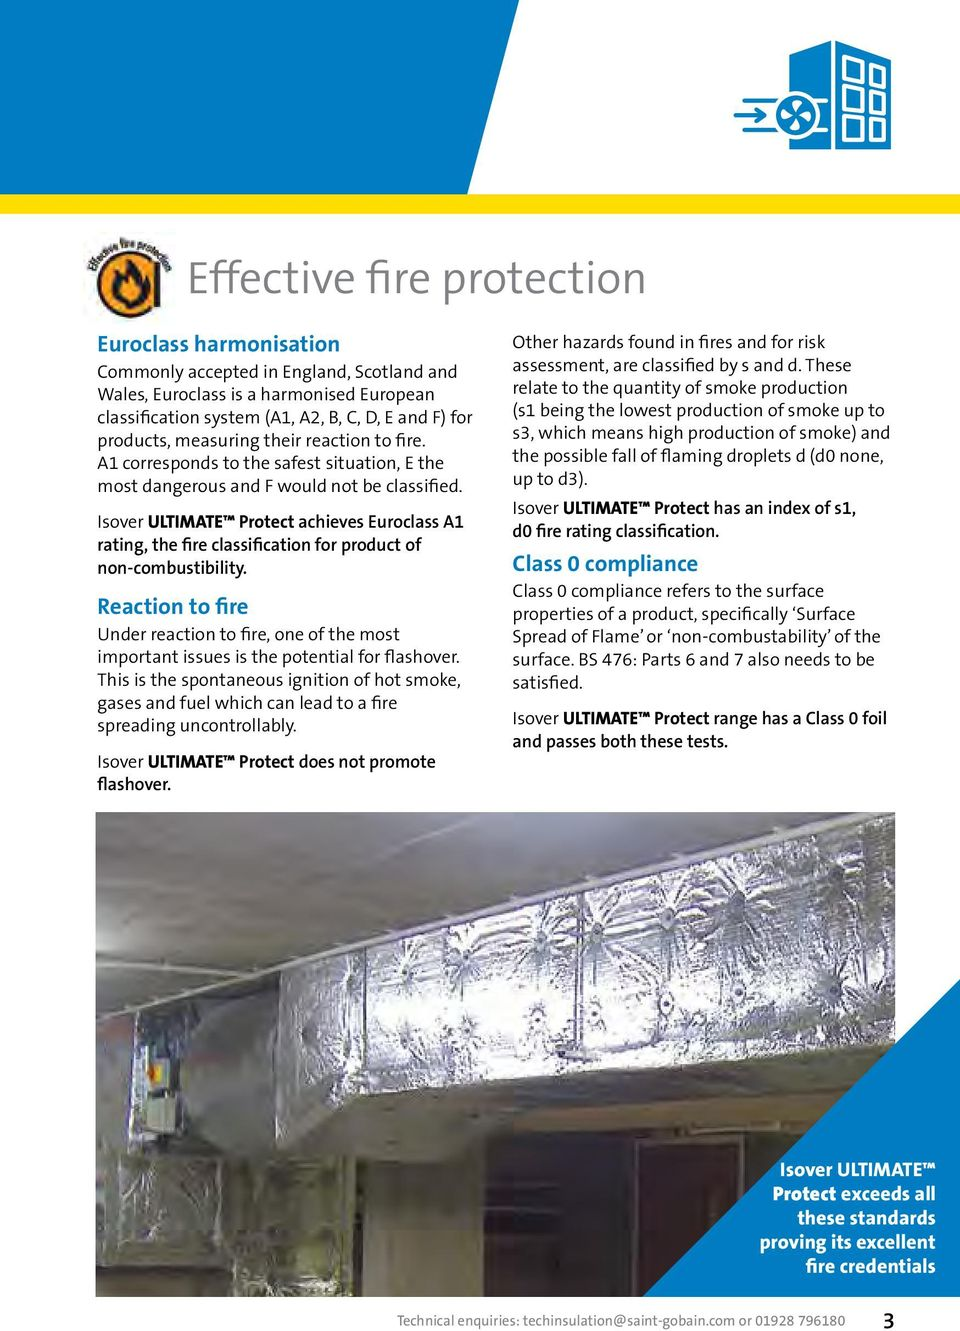 Isover Ultimate Protect achieves Euroclass A1 rating, the fire classification for product of non-combustibility.